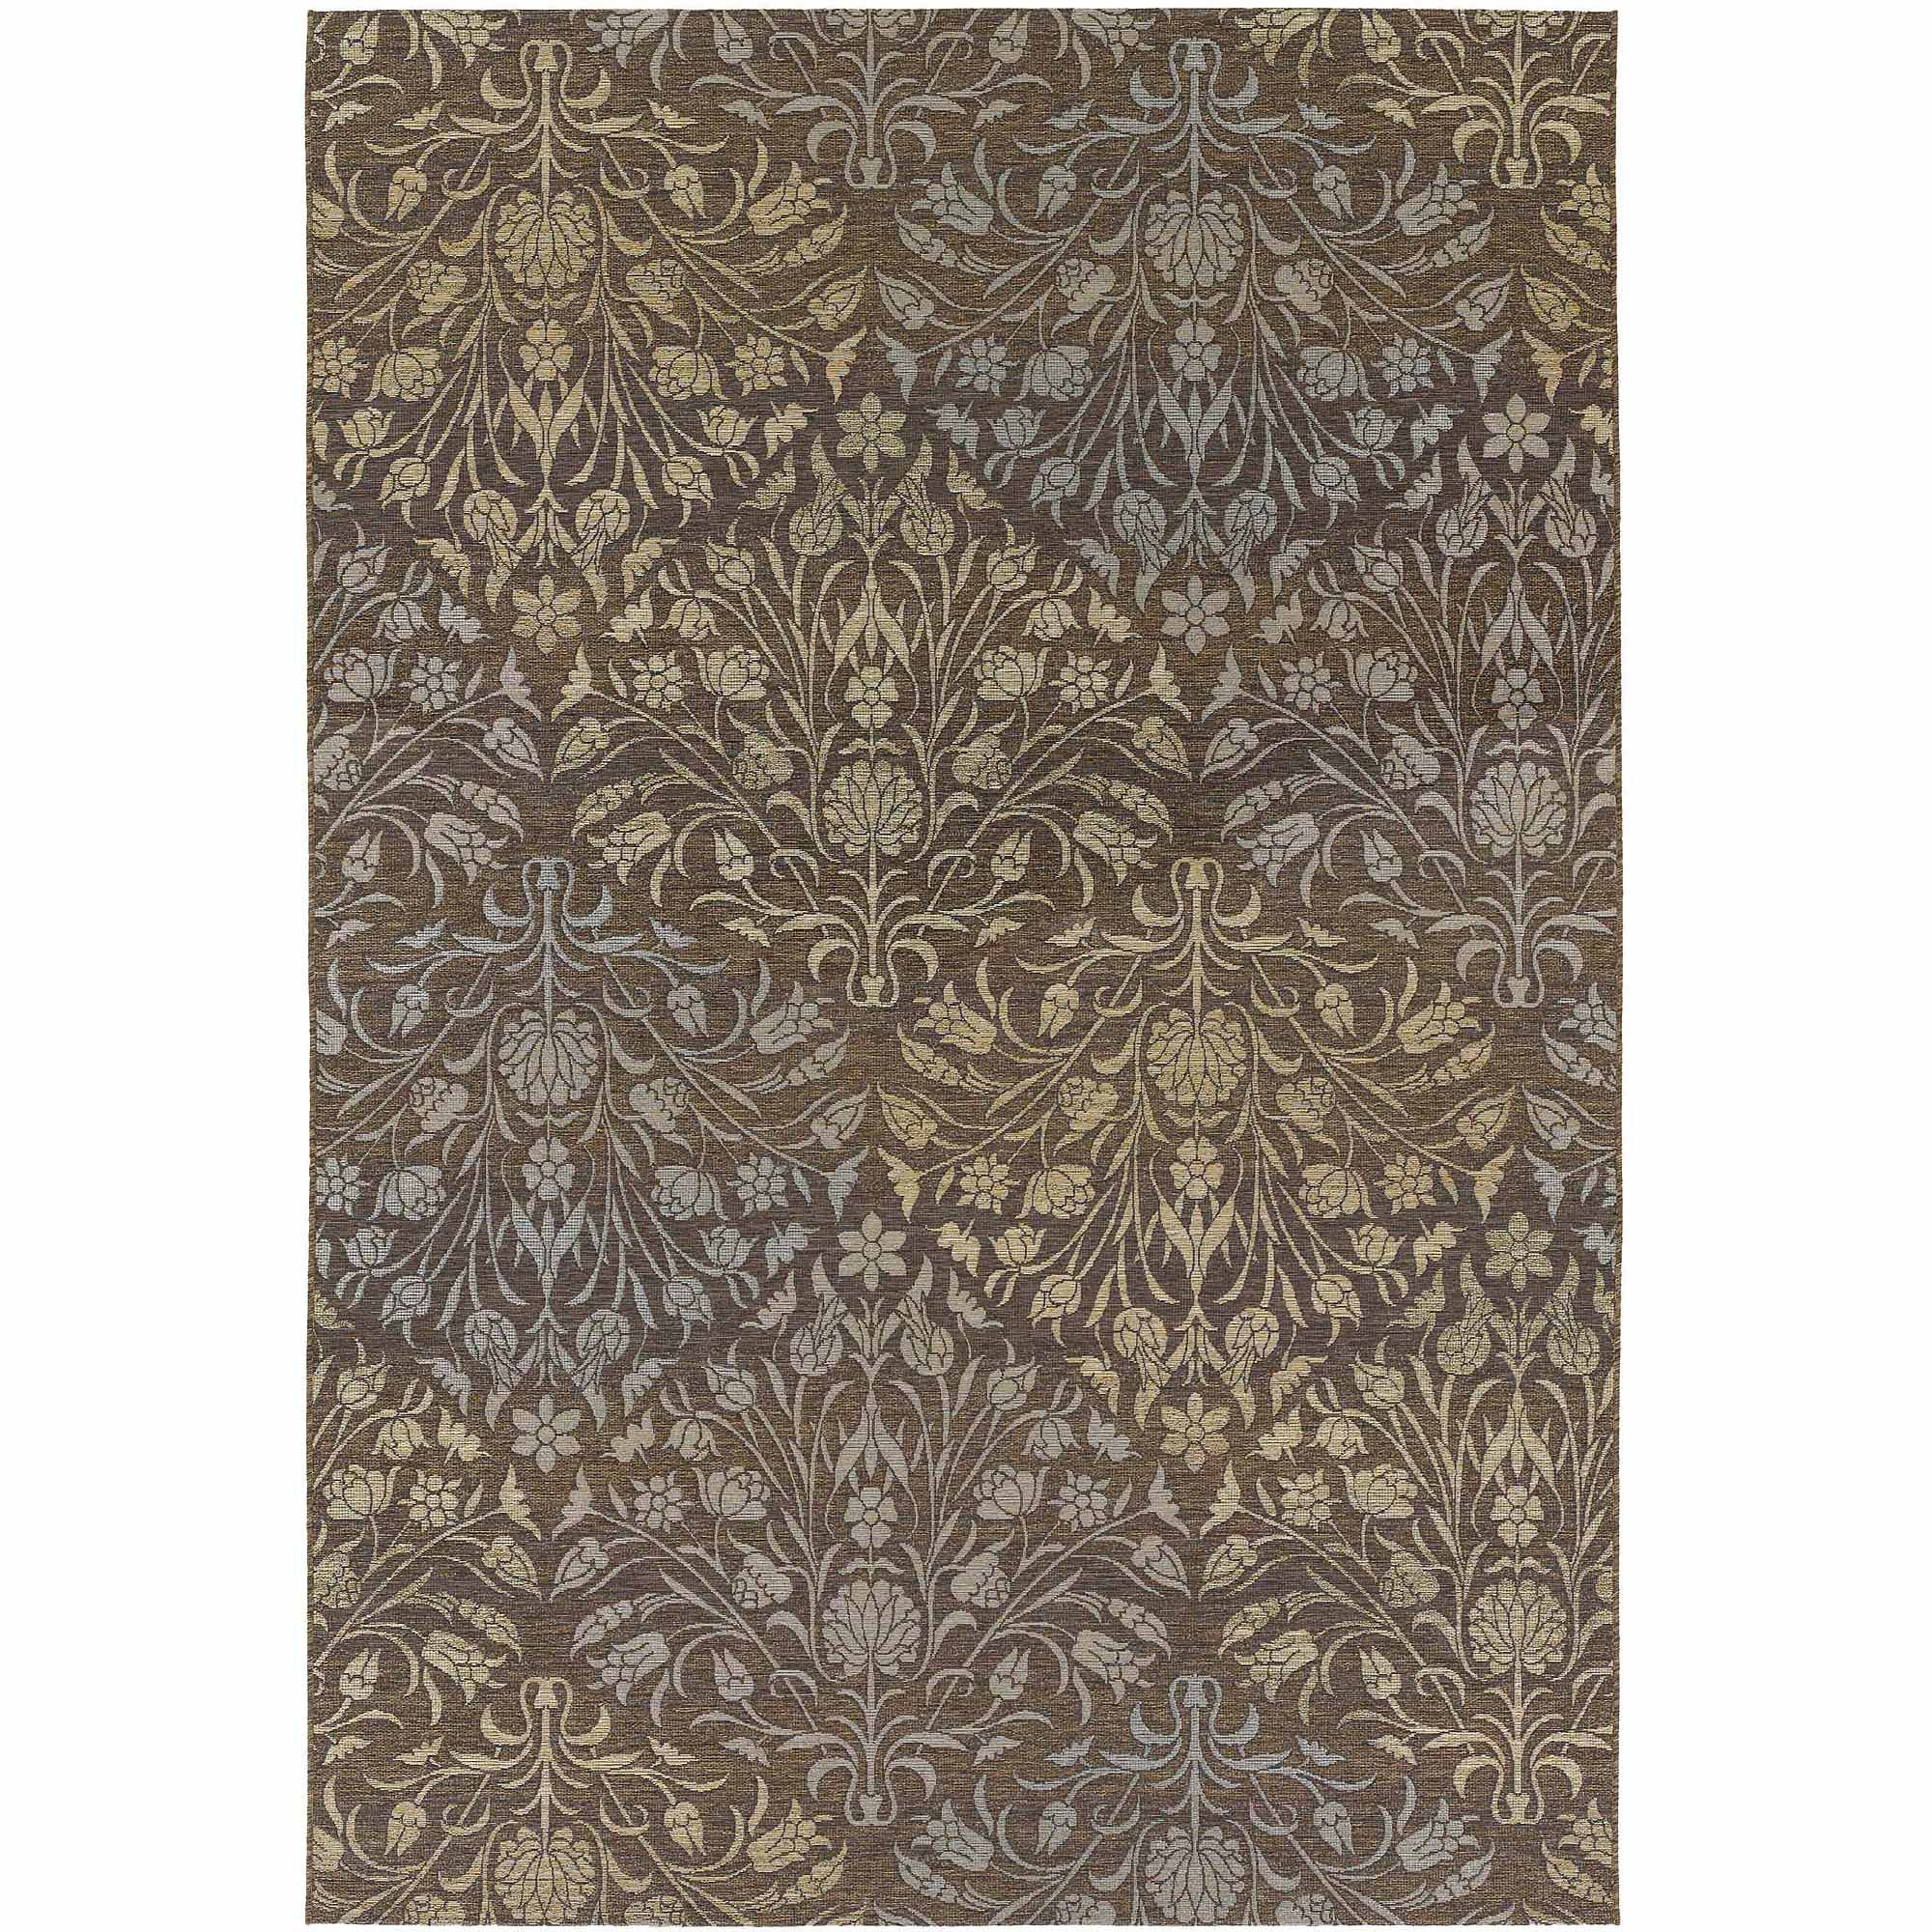 Couristan Dolce Coppola Flat Woven Indoor/Outdoor Rug, Brown and Beige, Multiple Sizes